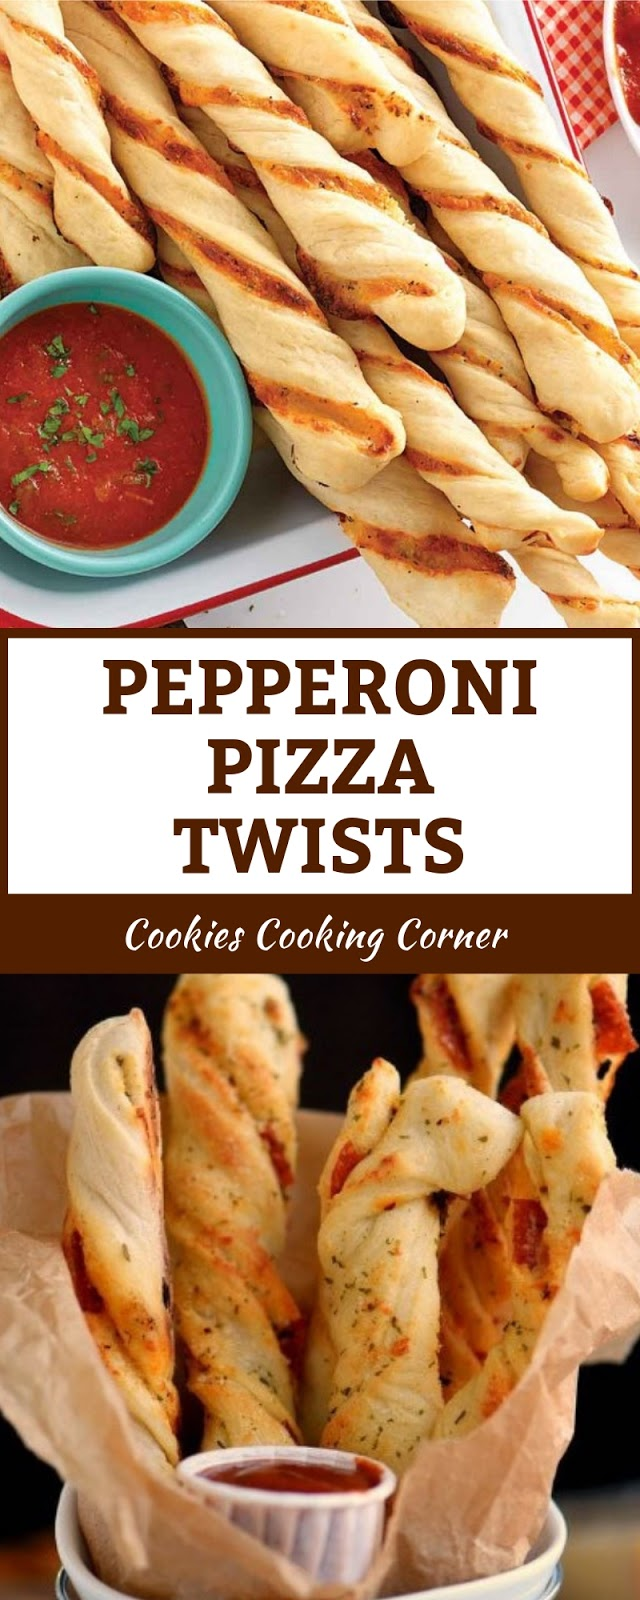 PEPPERONI PIZZA TWISTS